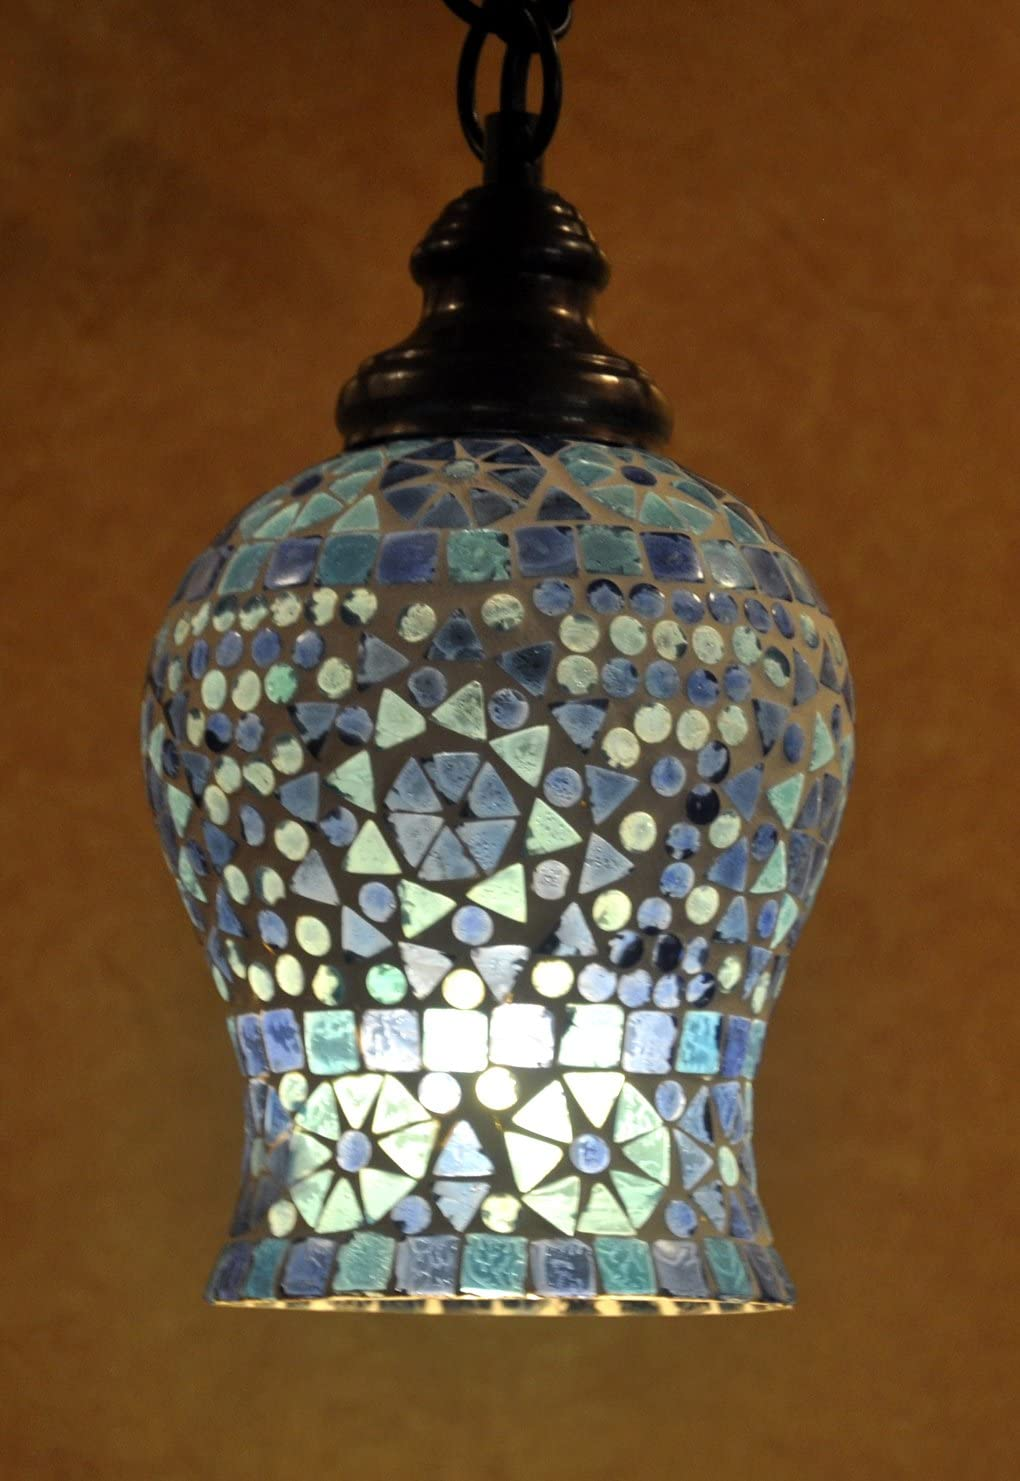 Lalhaveli Vintage Home Decorative Glass Ceiling Lamp Shade Pendant Hanging Light